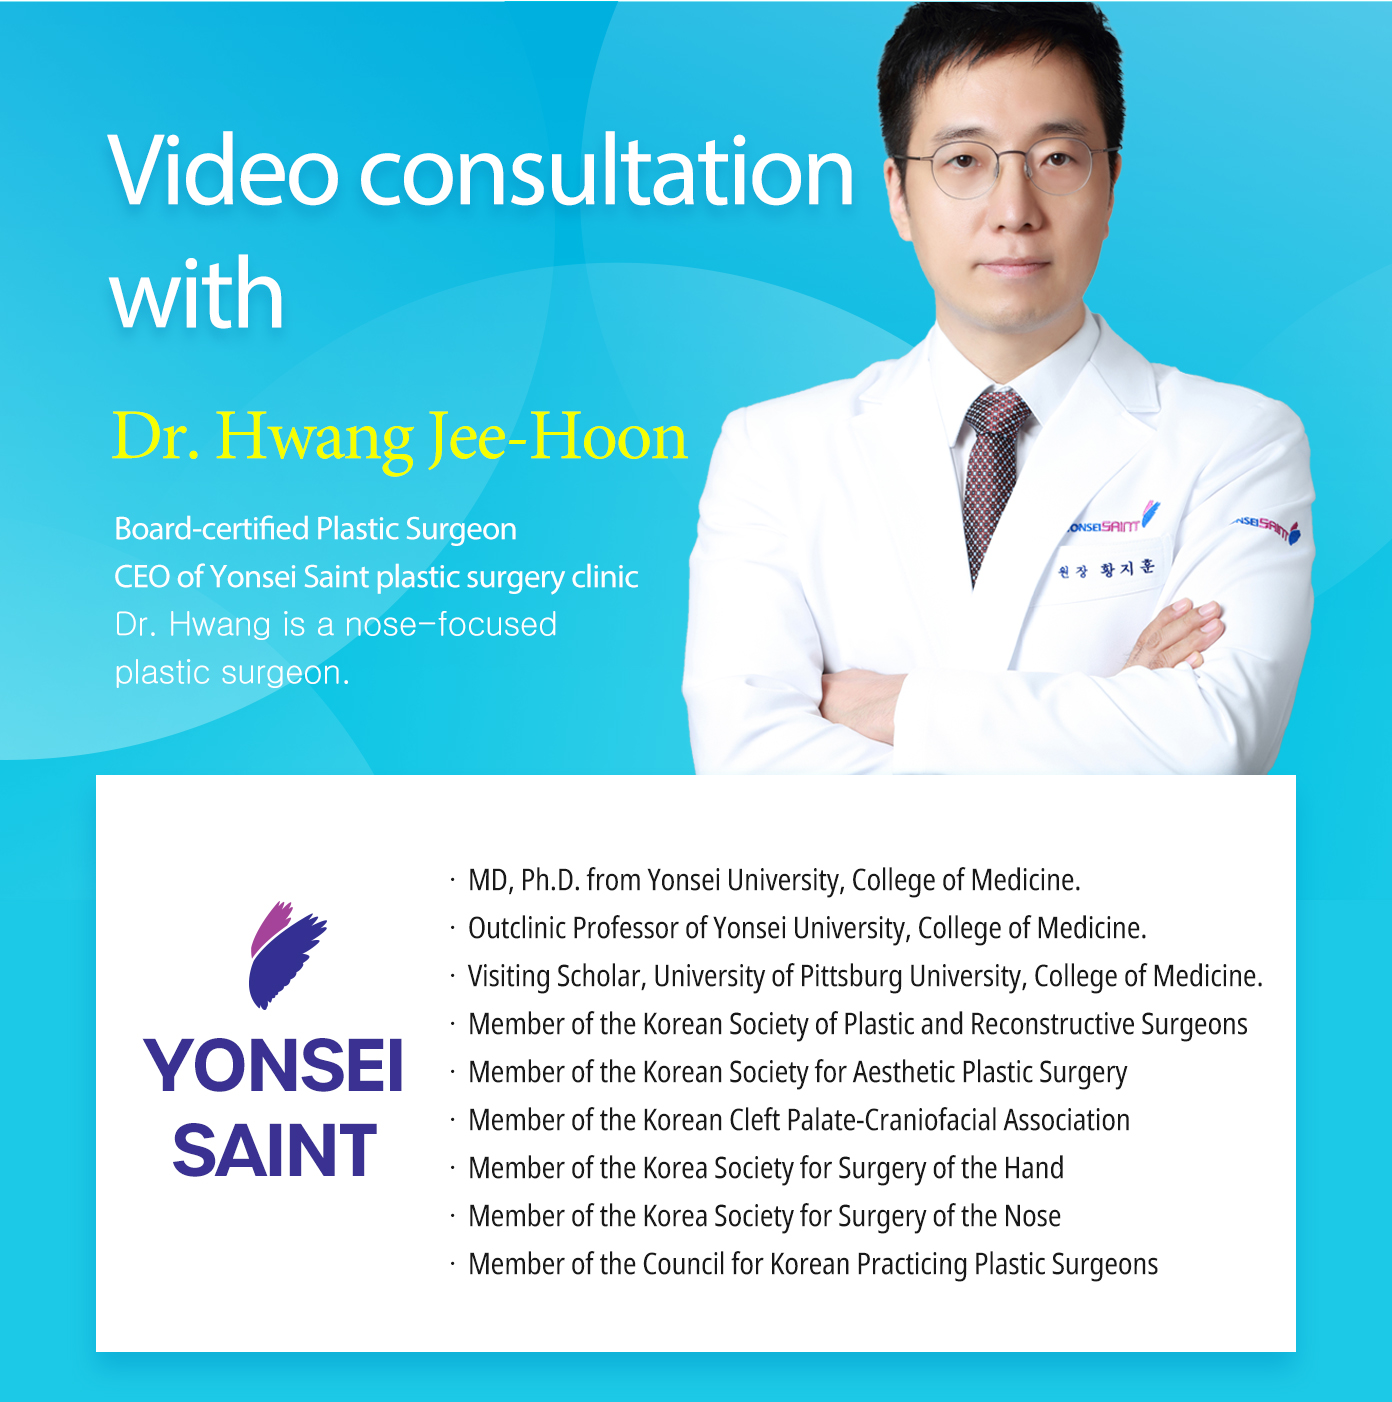 Apply for the video consultation